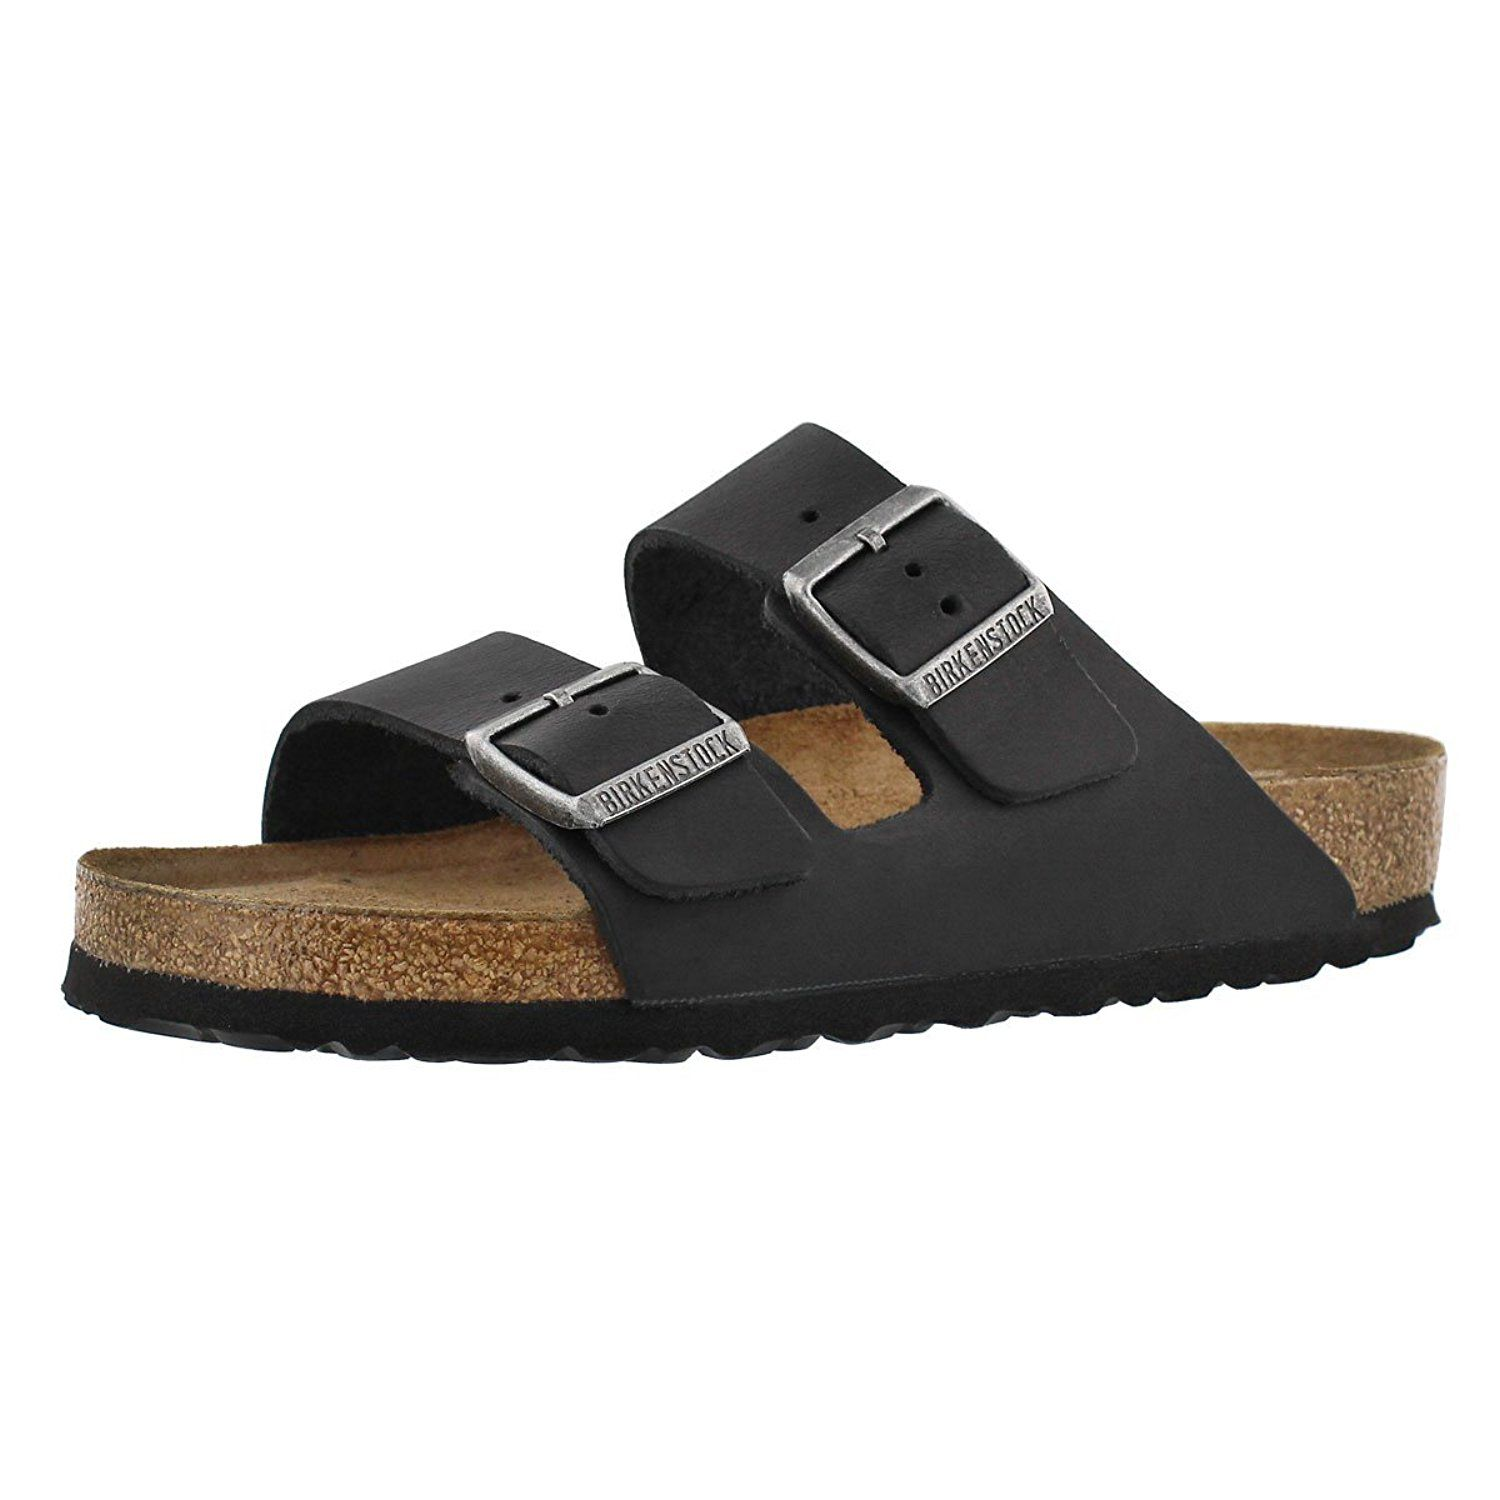 Birkenstock Women S Arizona 2 Strap Soft Cork Footbed Sandal You Can Get More Details Here Birkenstock Sandal Cork Footbed Sandals Footbed Sandals Sandals